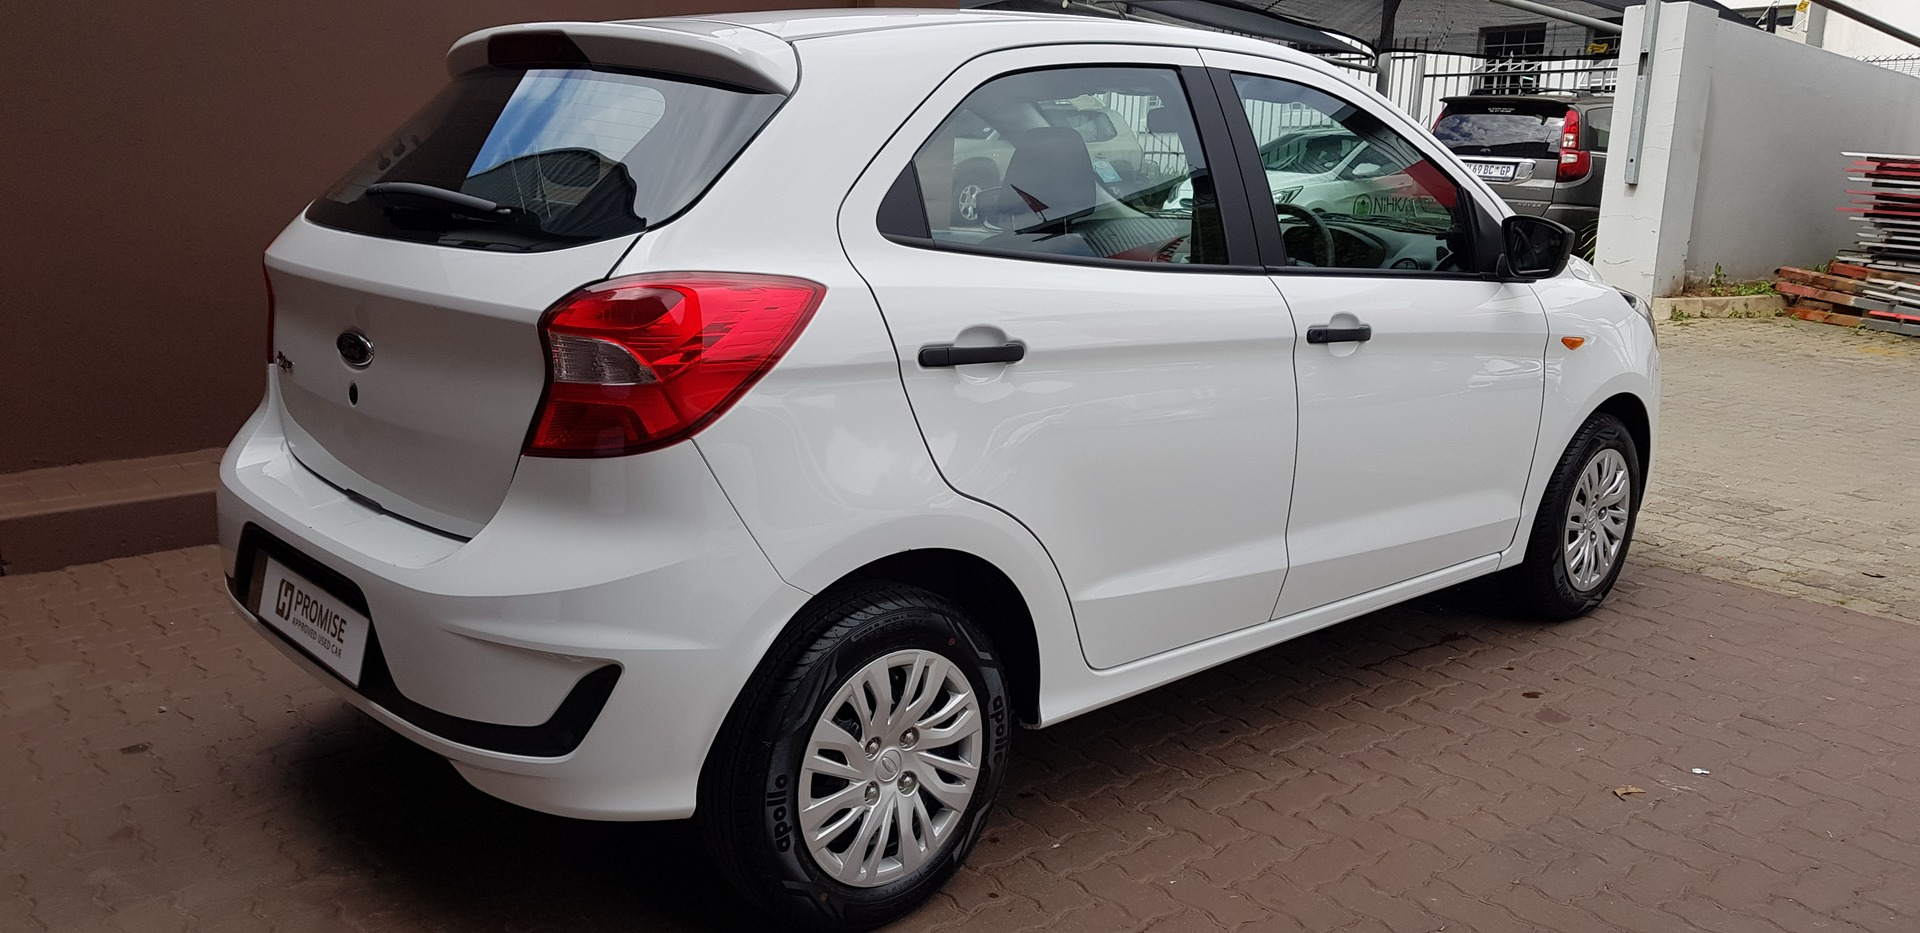 FORD 1.5Ti VCT AMBIENTE (5DR) Johannesburg 4332460